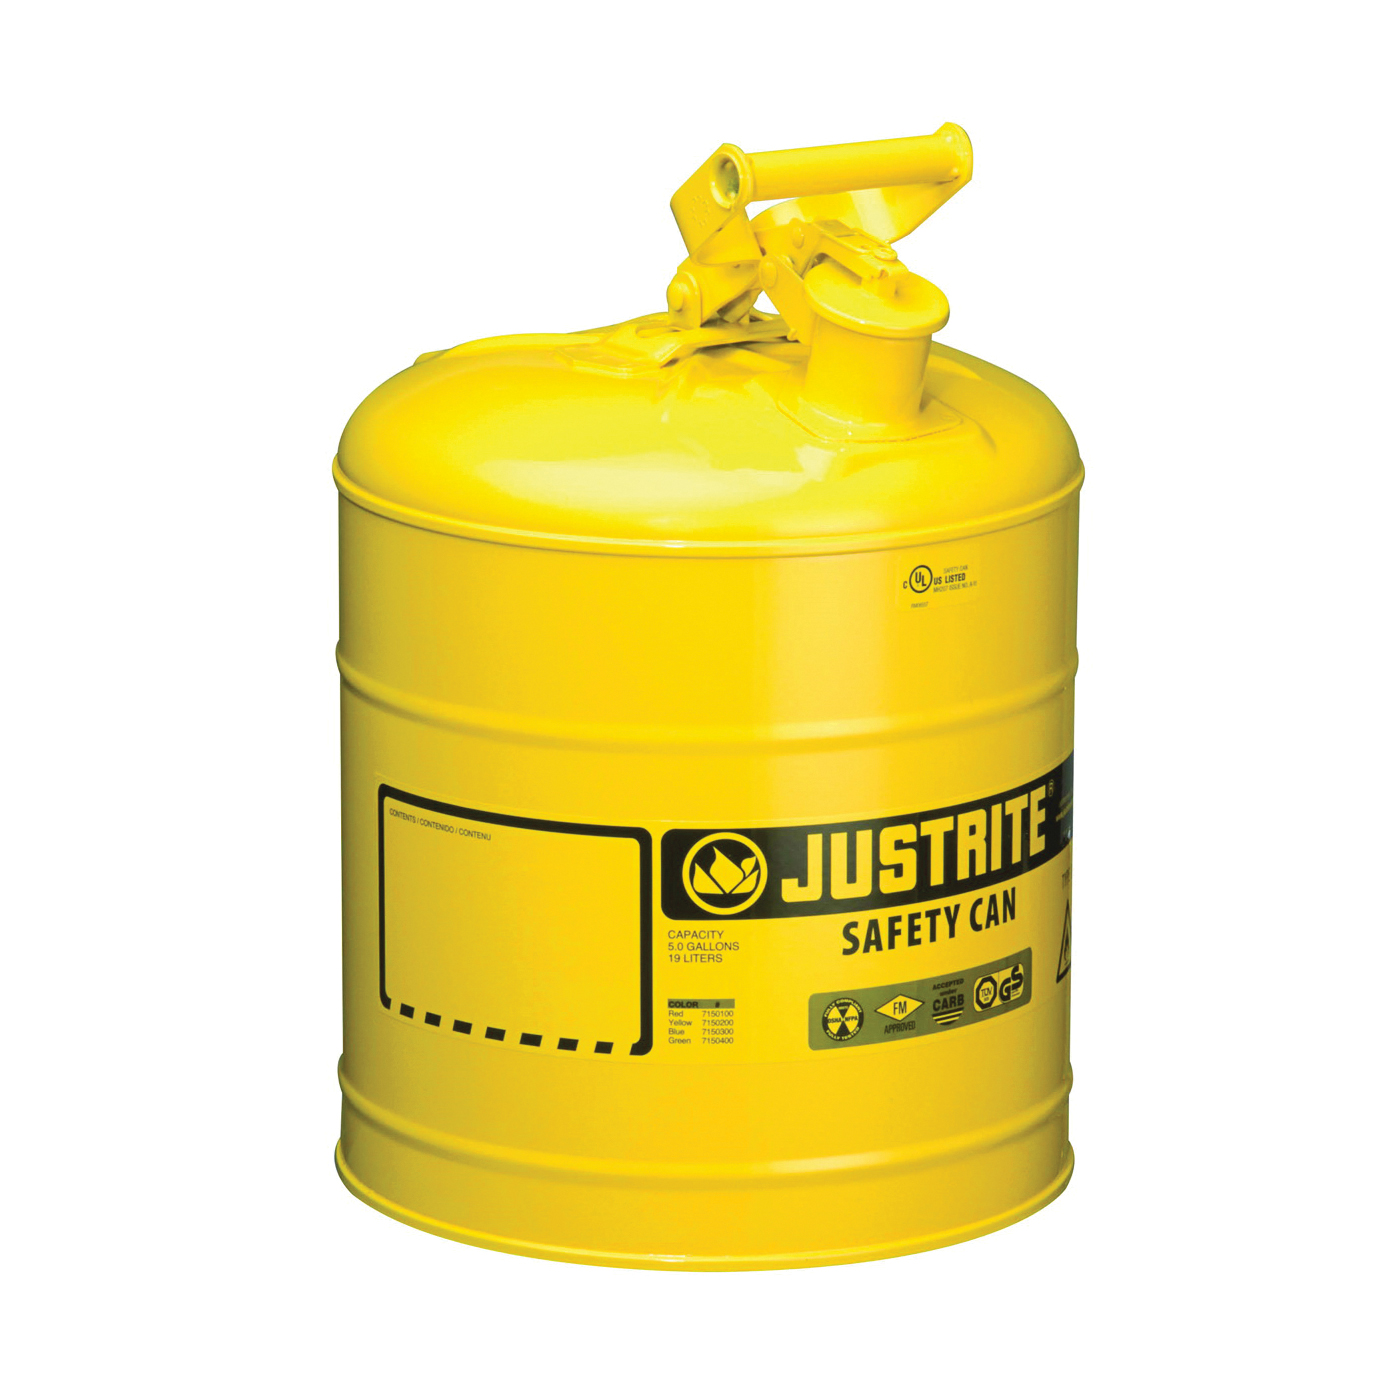 Picture of JUSTRITE 7150200 Safety Can, 5 gal Capacity, Steel, Yellow